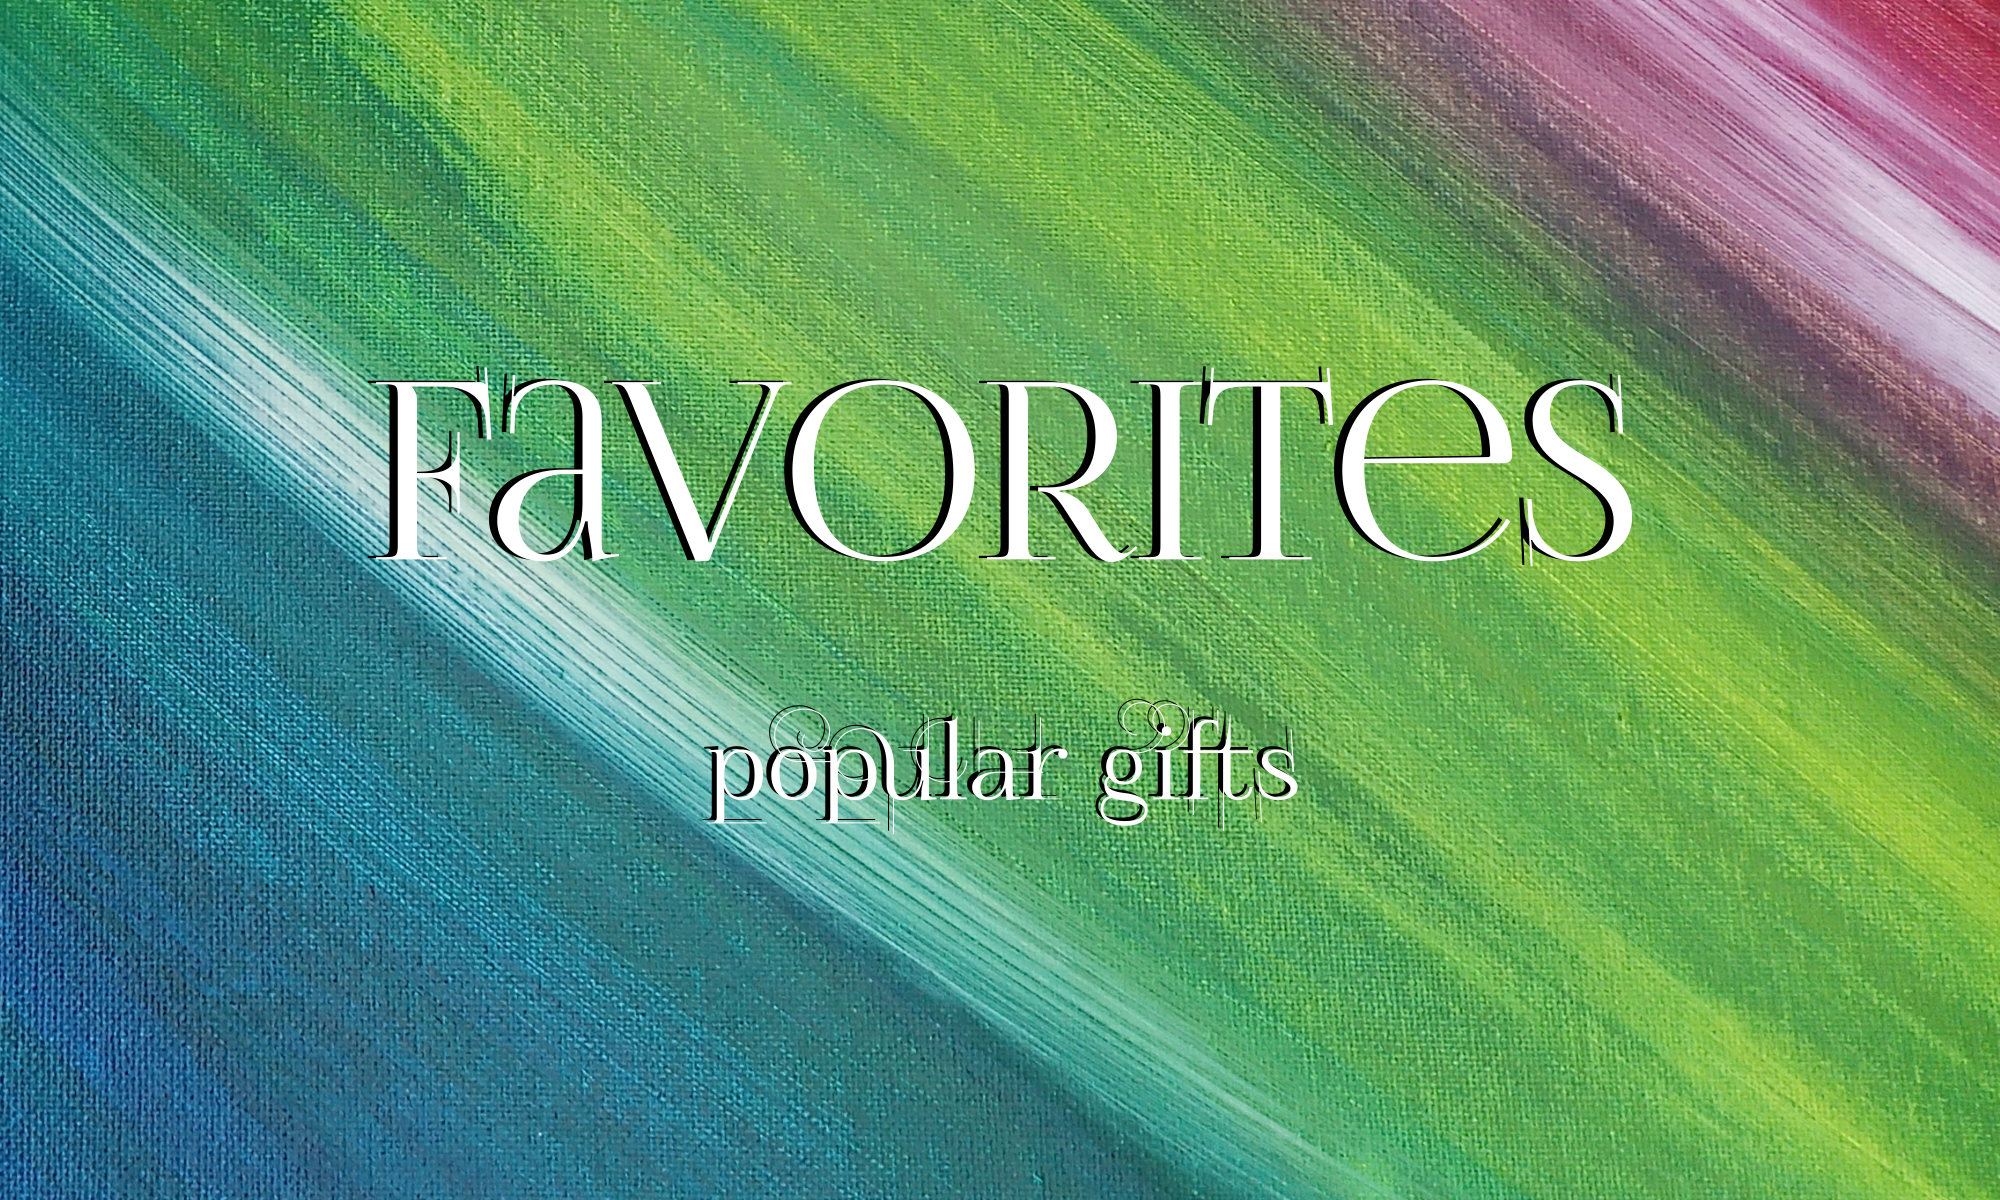 Favorites - popular gifts